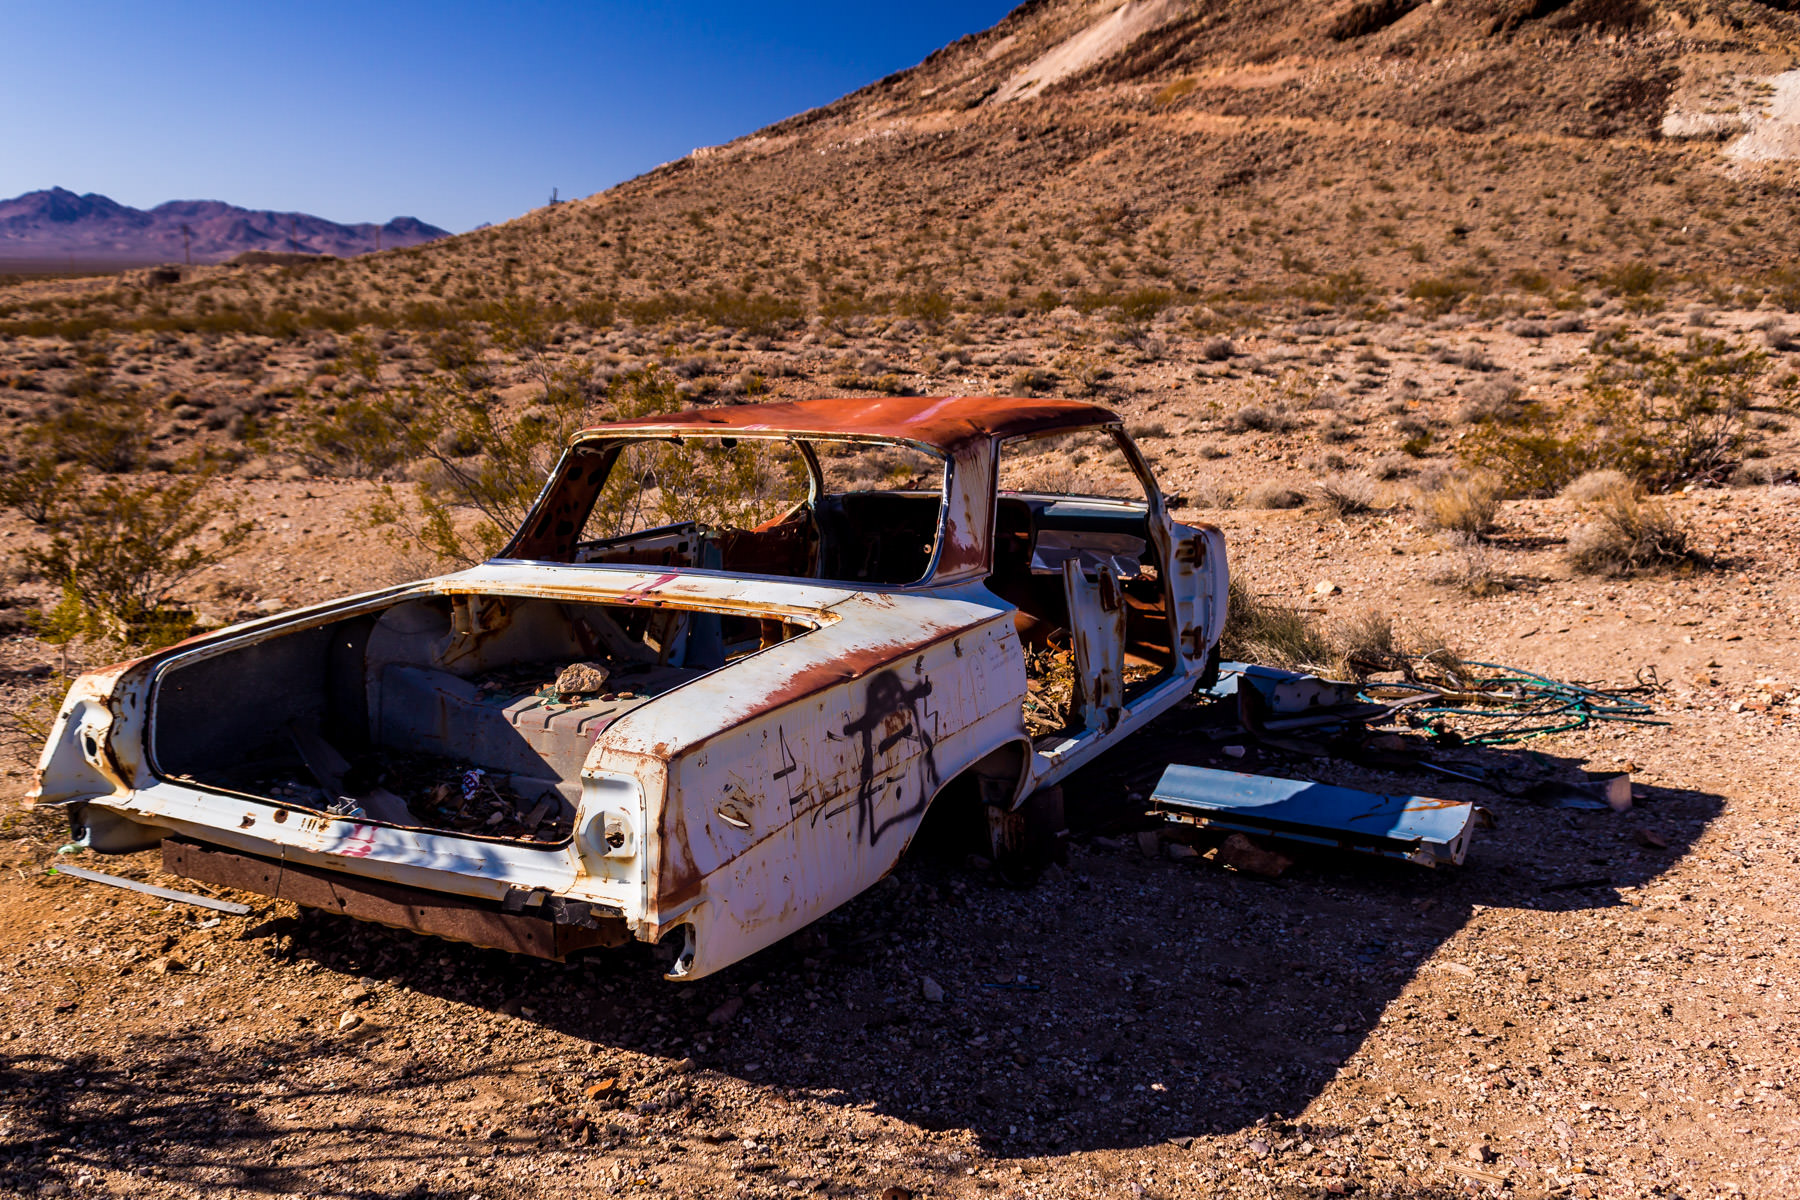 An abandoned Chevy Impala left to the elements in the middle of the vast, desolate Nevada desert near the border with California.